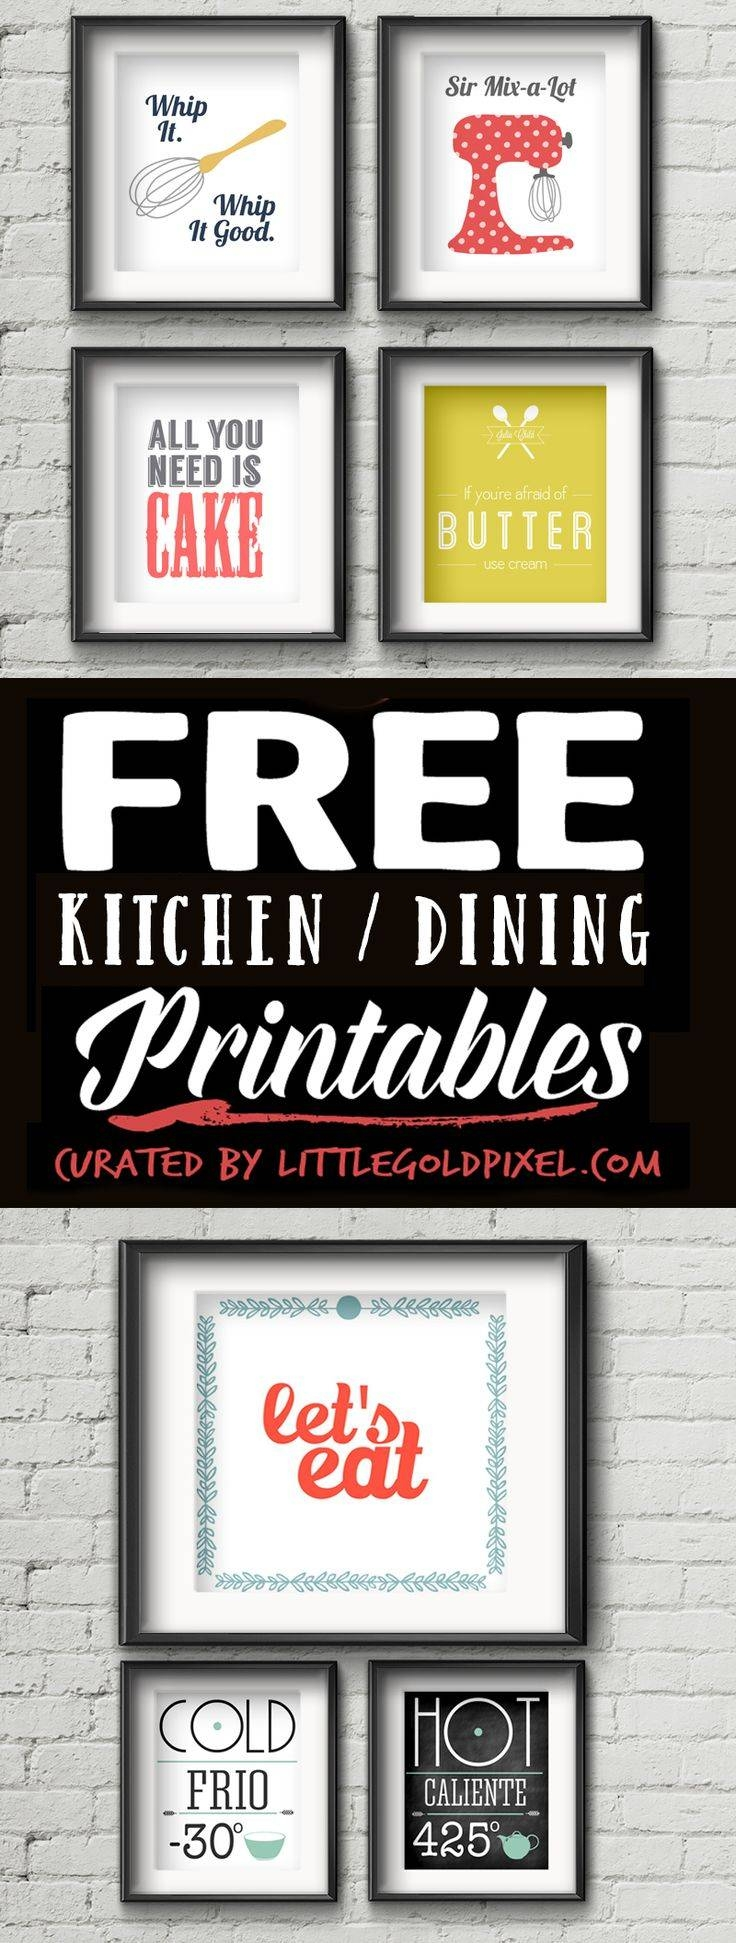 Best 25+ Kitchen Wall Art Ideas On Pinterest | Kitchen Prints Pertaining To Current Wall Art For Kitchens (View 2 of 20)